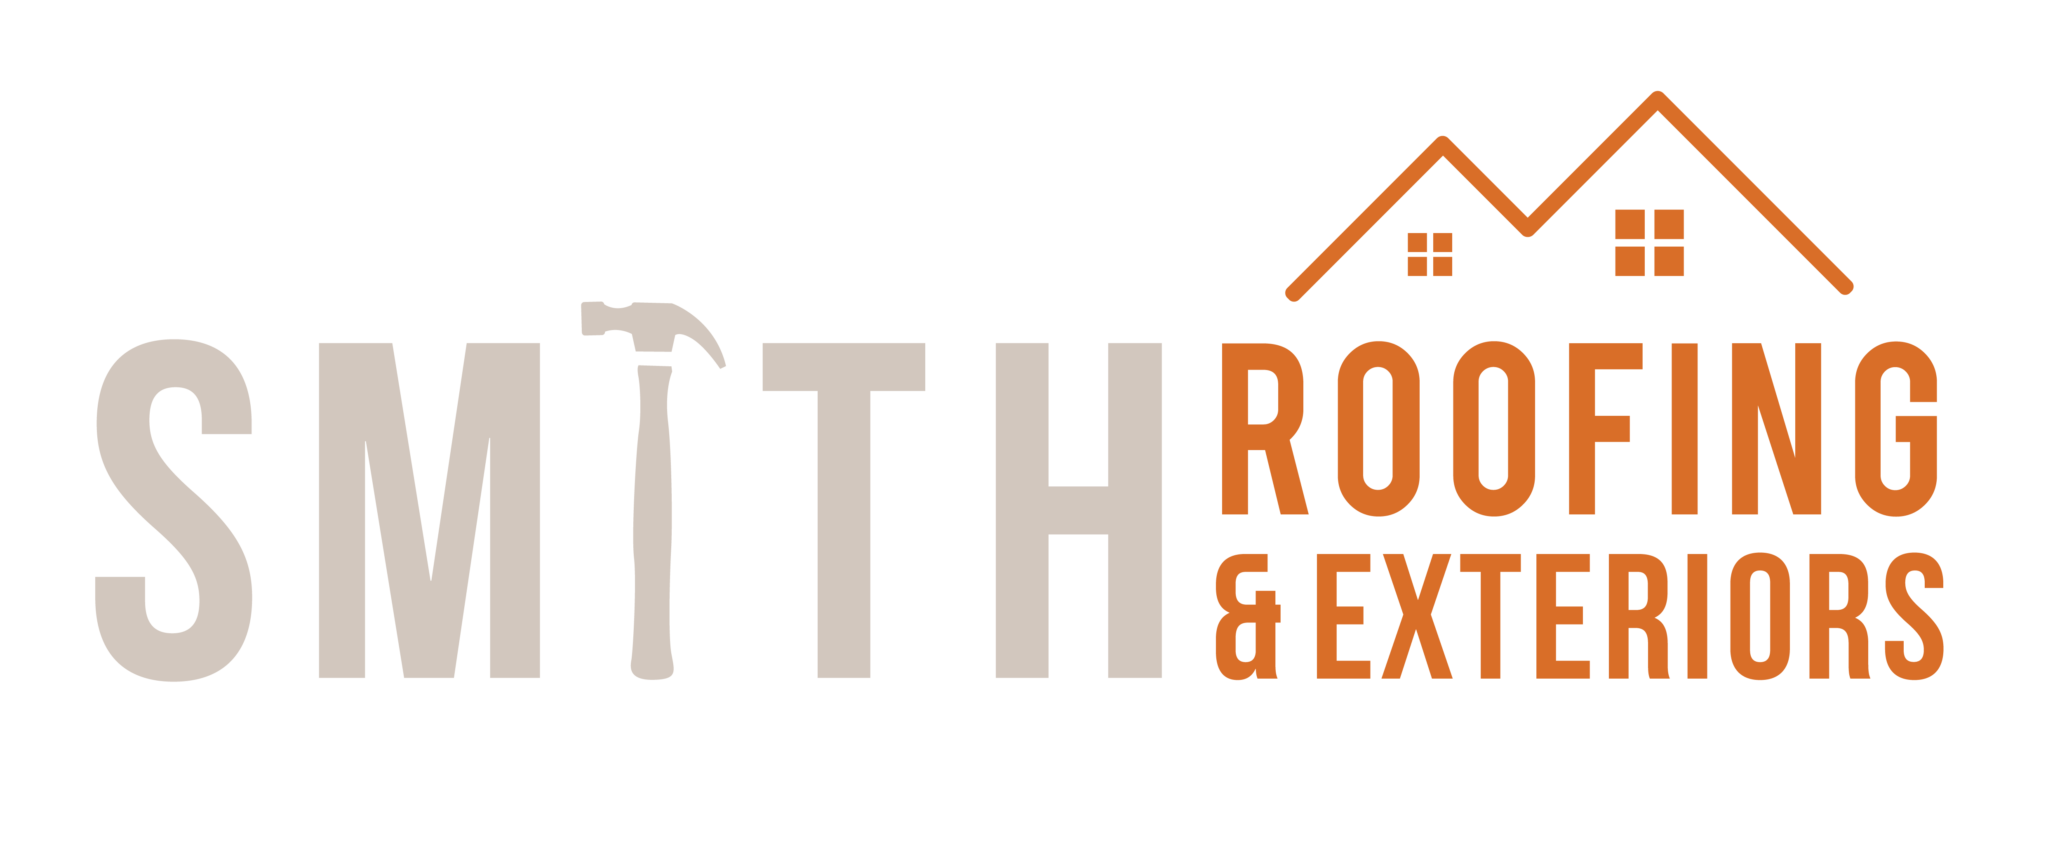 Smith Roofing & Exterior logo